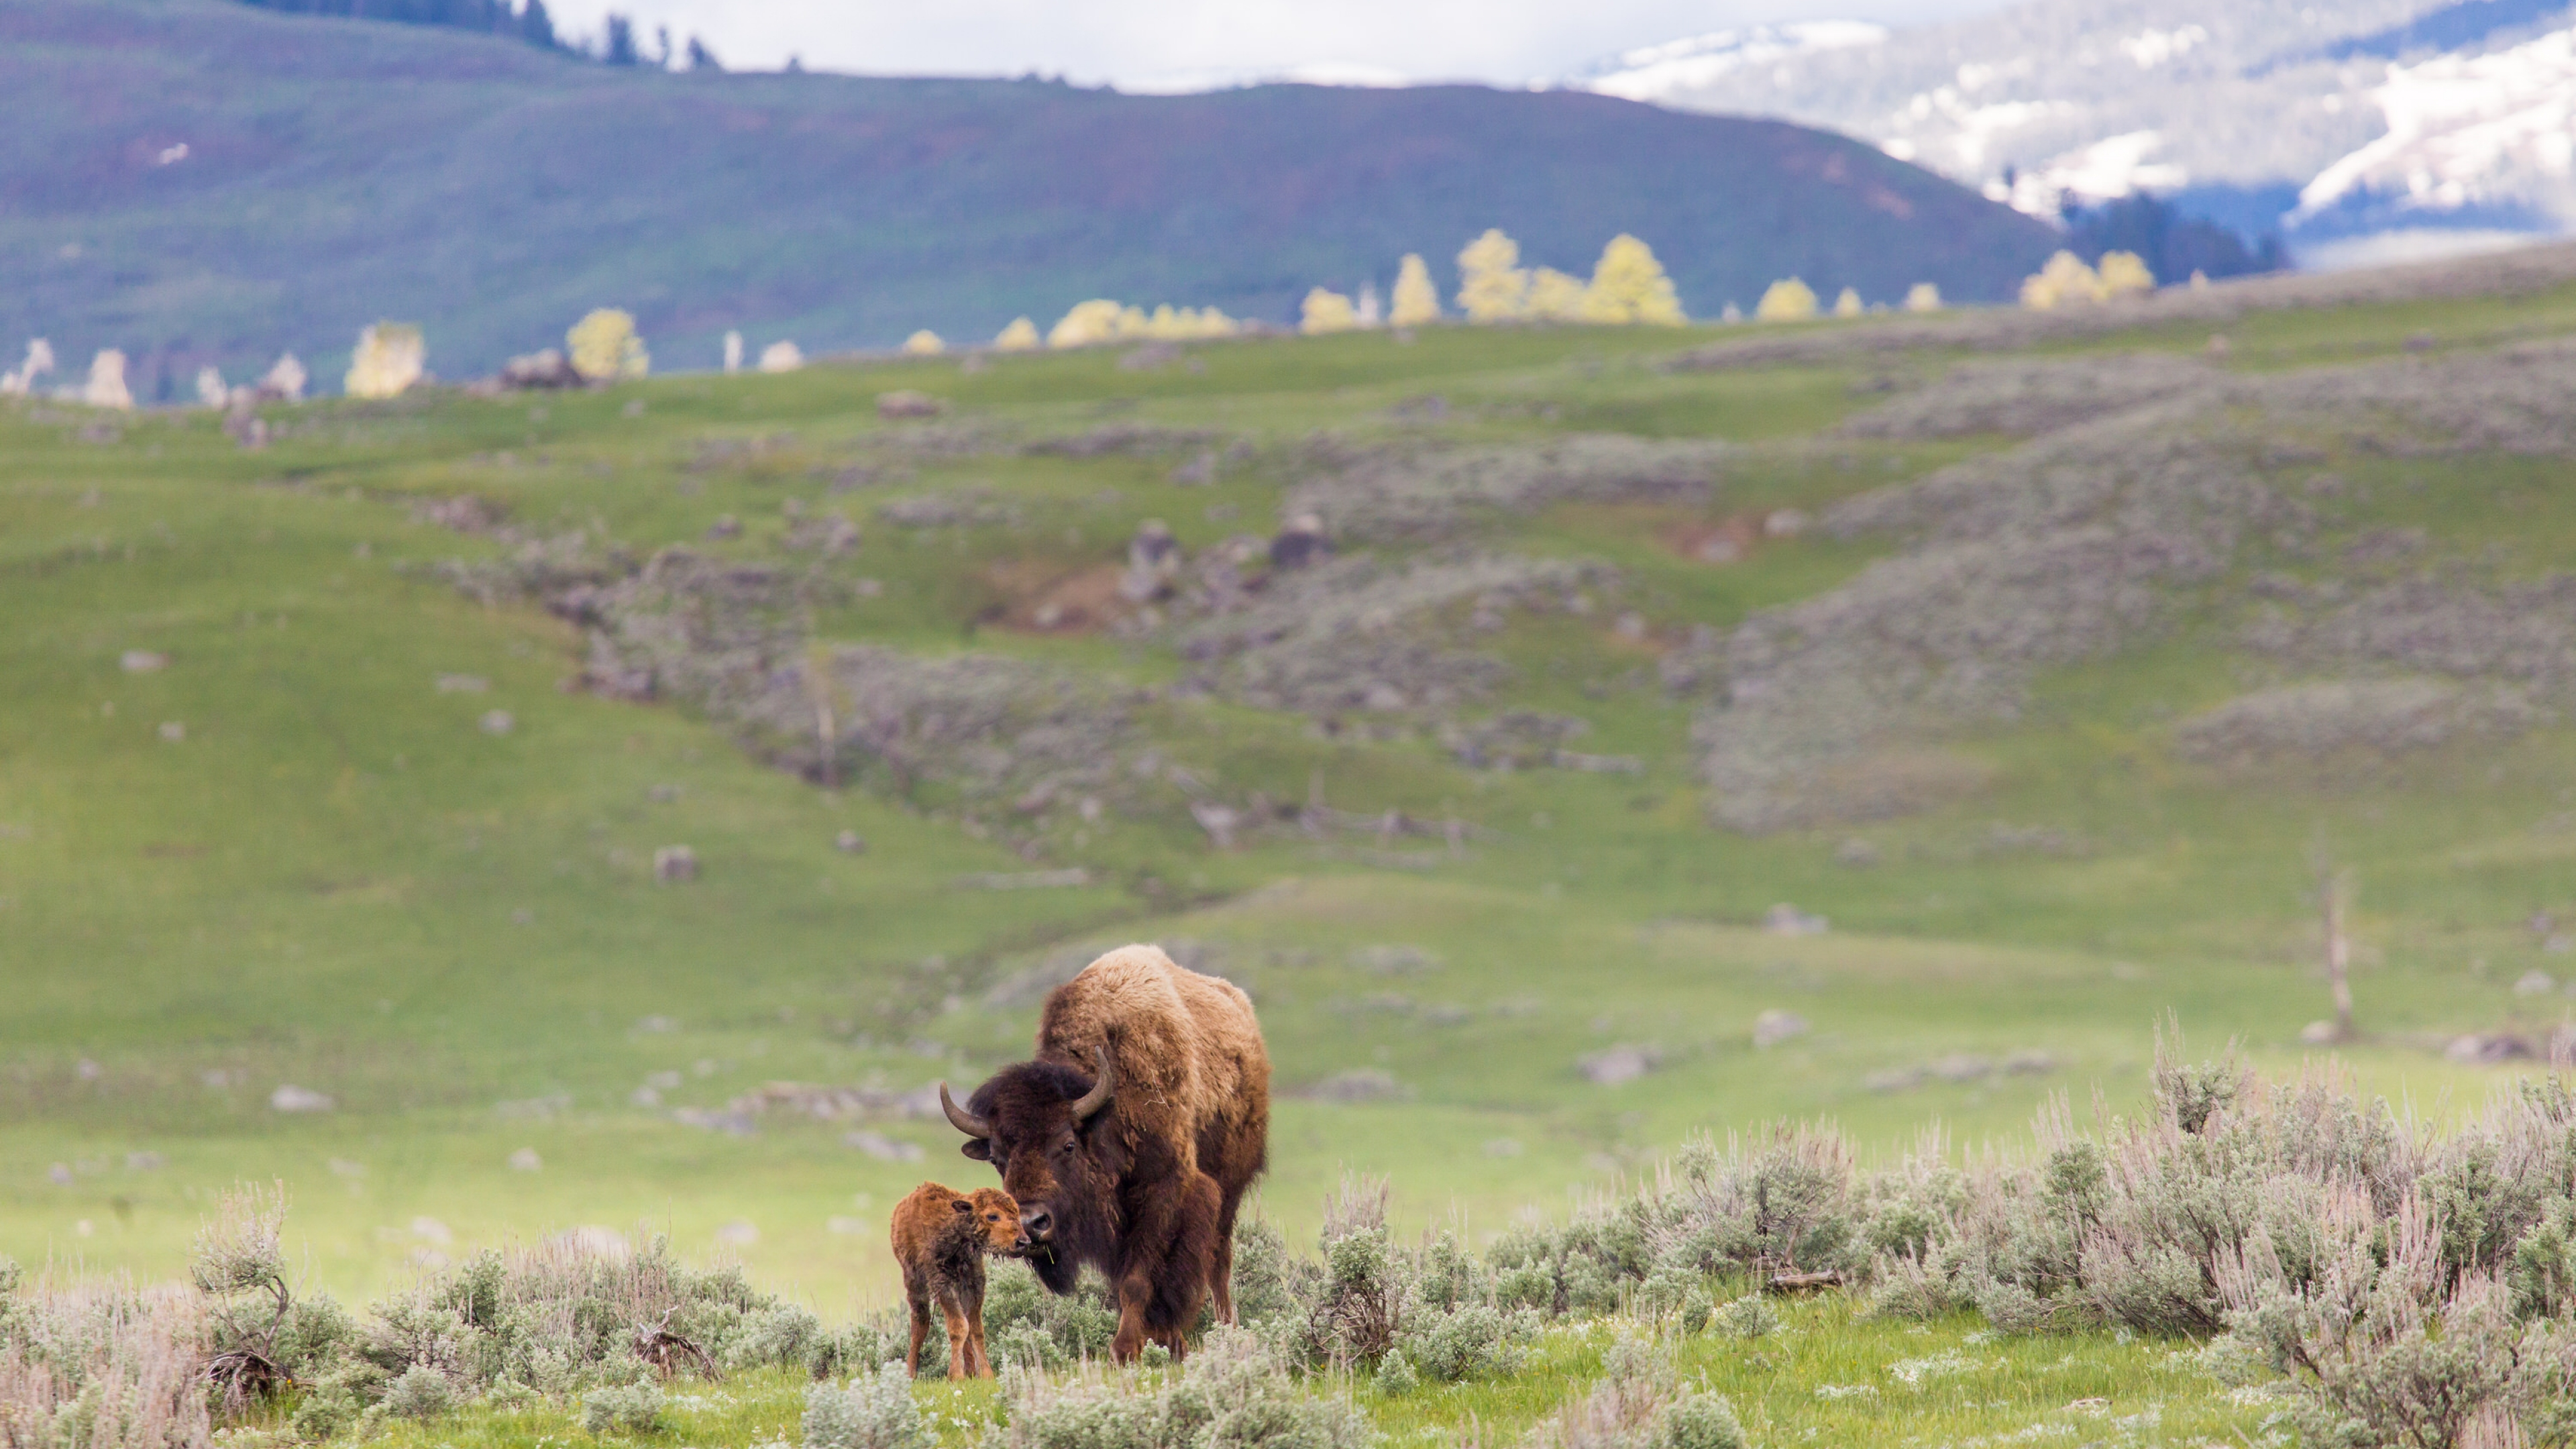 A newborn bison calf standing next to its mother at Yellowstone National Park